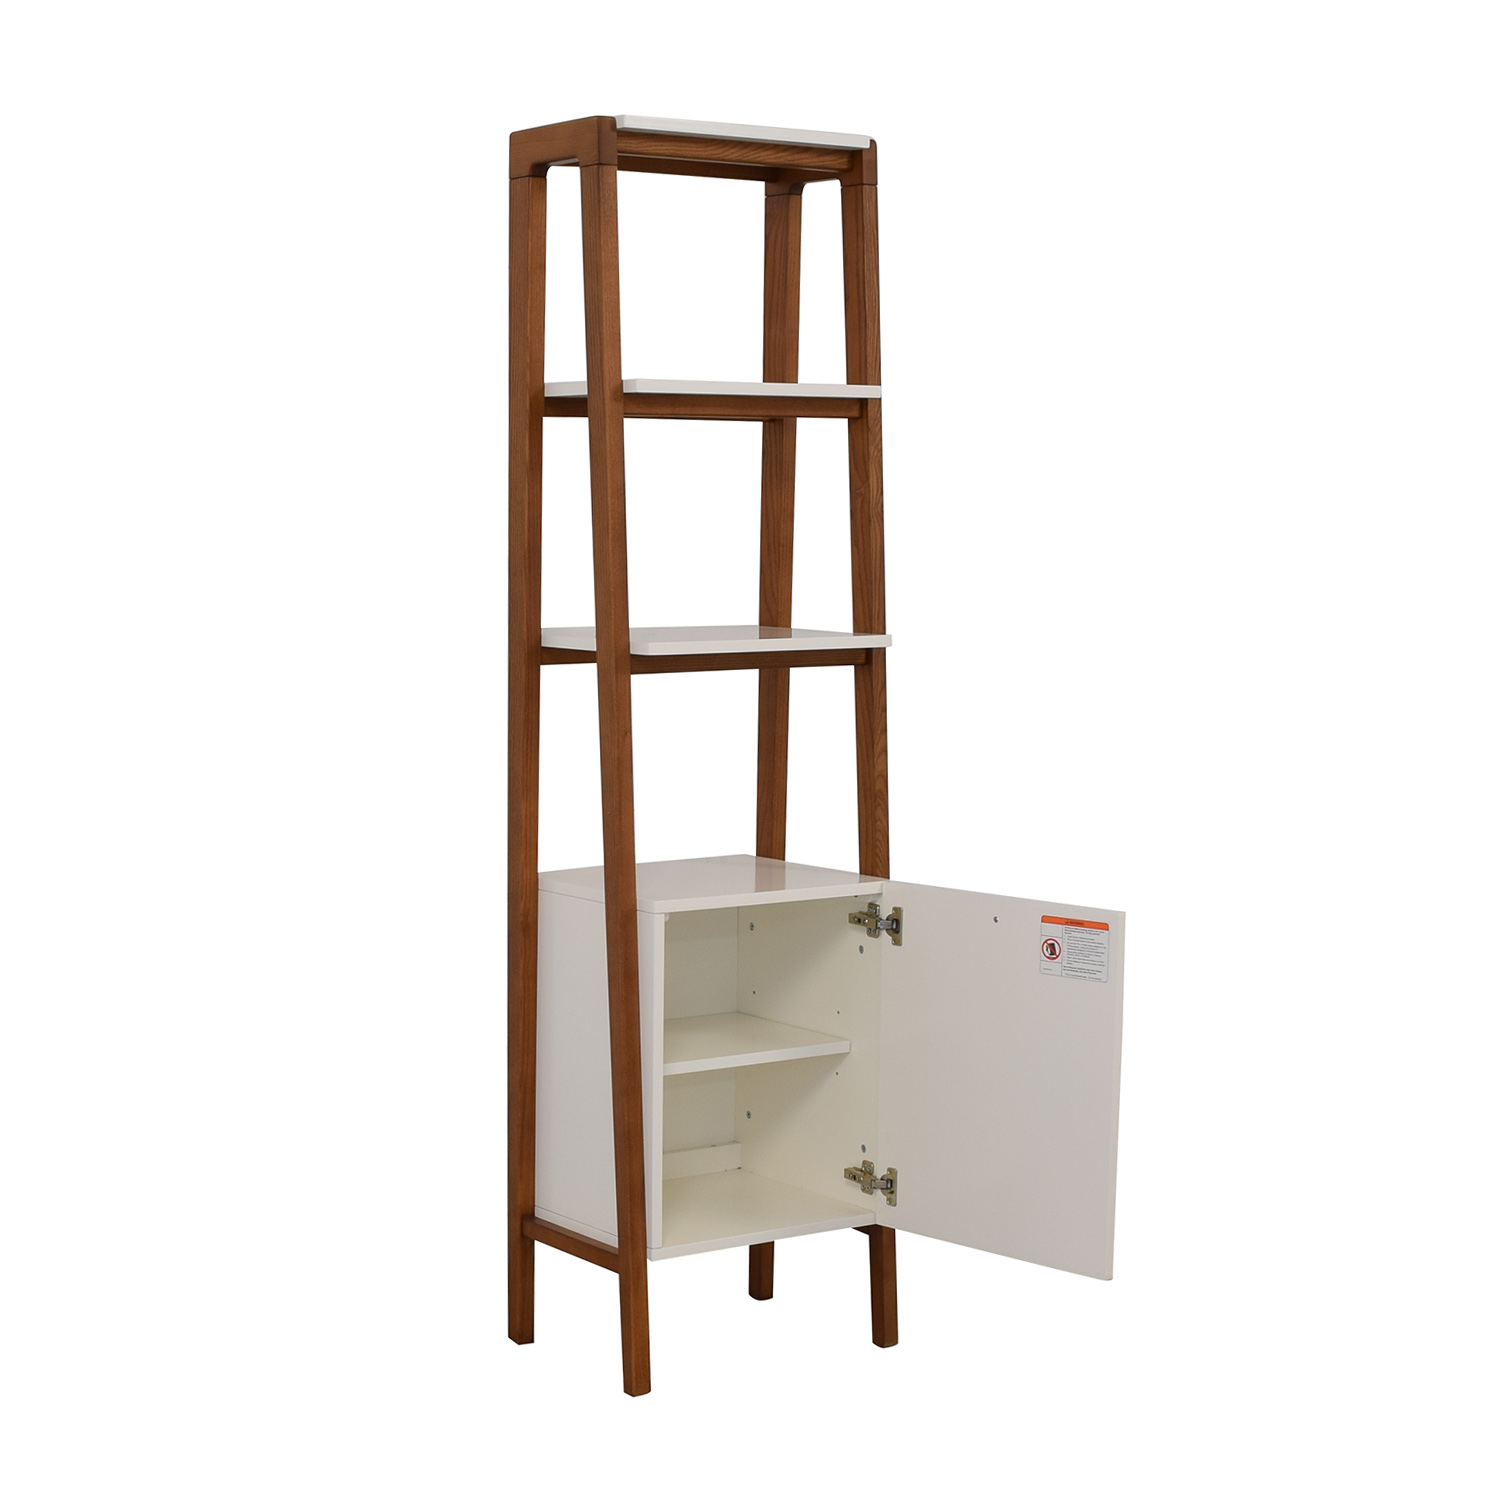 West Elm West Elm Modern Narrow Tower used